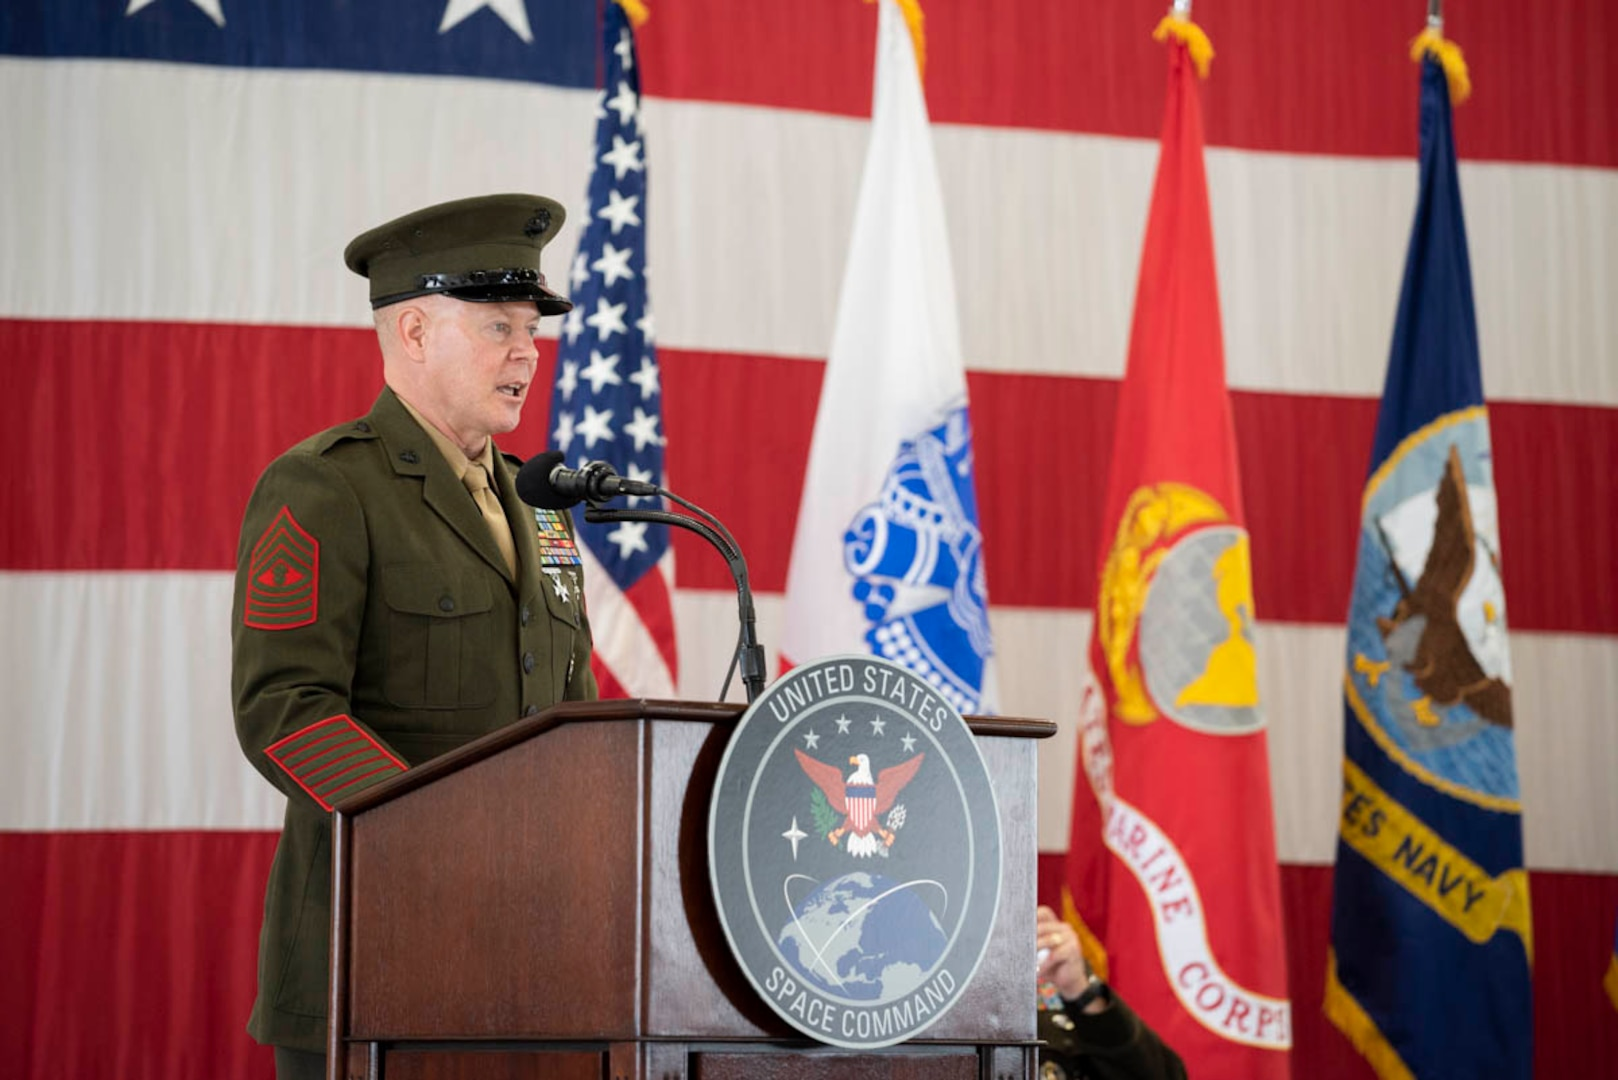 U.S. Marine Corps Master Gunnery Sgt. Scott Stalker speaks during a change of responsibility ceremony Aug. 28, 2020, at Peterson Air Force Base, Colorado. During the event, the first since USSPACECOM was established Aug. 29, 2019, U.S. Space Force Chief Master Sgt. Roger Towberman relinquished responsibility of the combatant command's highest enlisted position to Stalker, who previously served as command senior enlisted leader for U.S. Cyber Command and the National Security Agency.